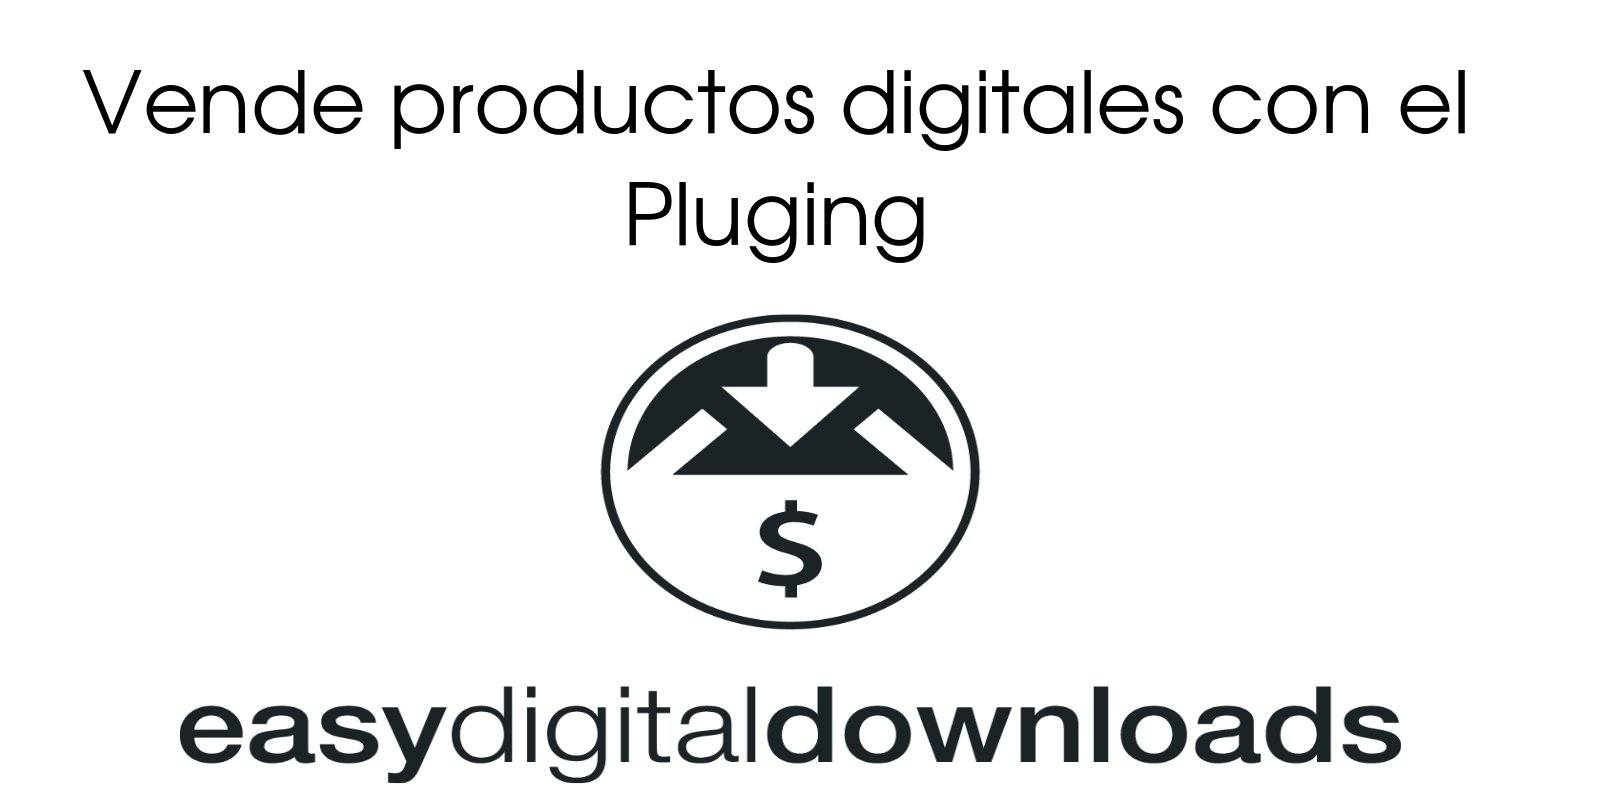 Meetup Easy Digital Download (EDD). Vende productos digitales